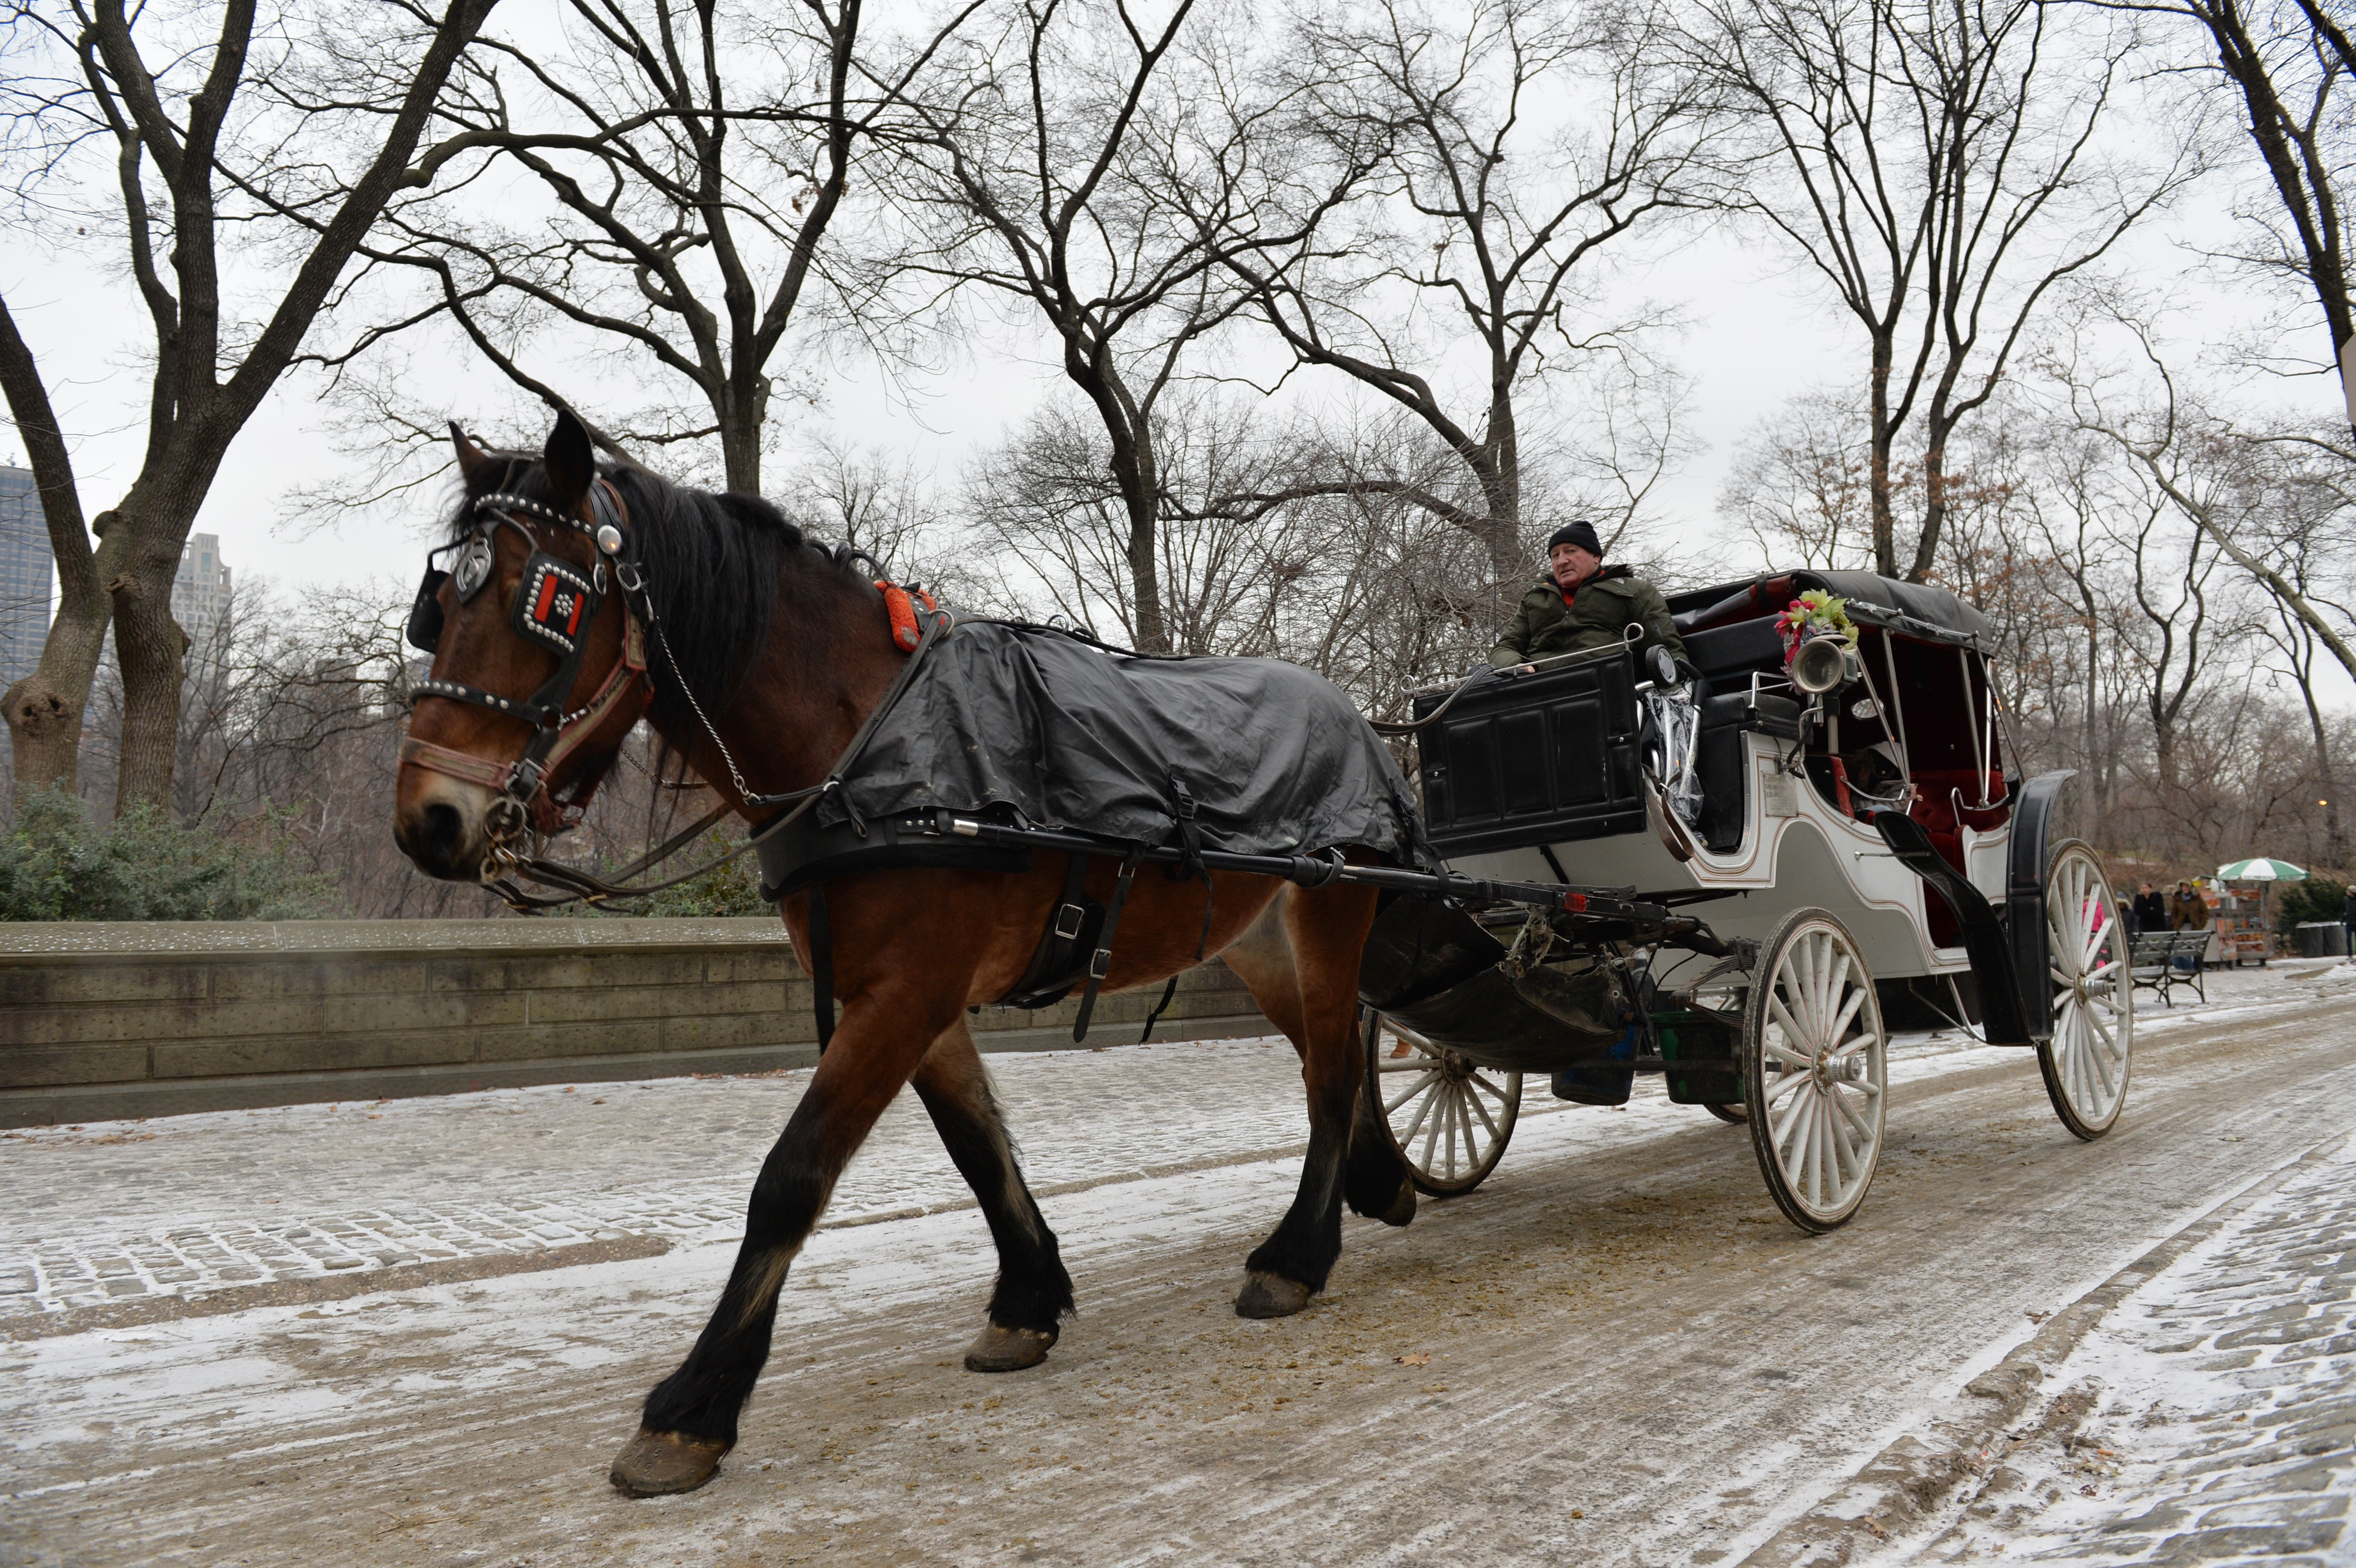 NYC carriage drivers must move into Central Park, judge rules